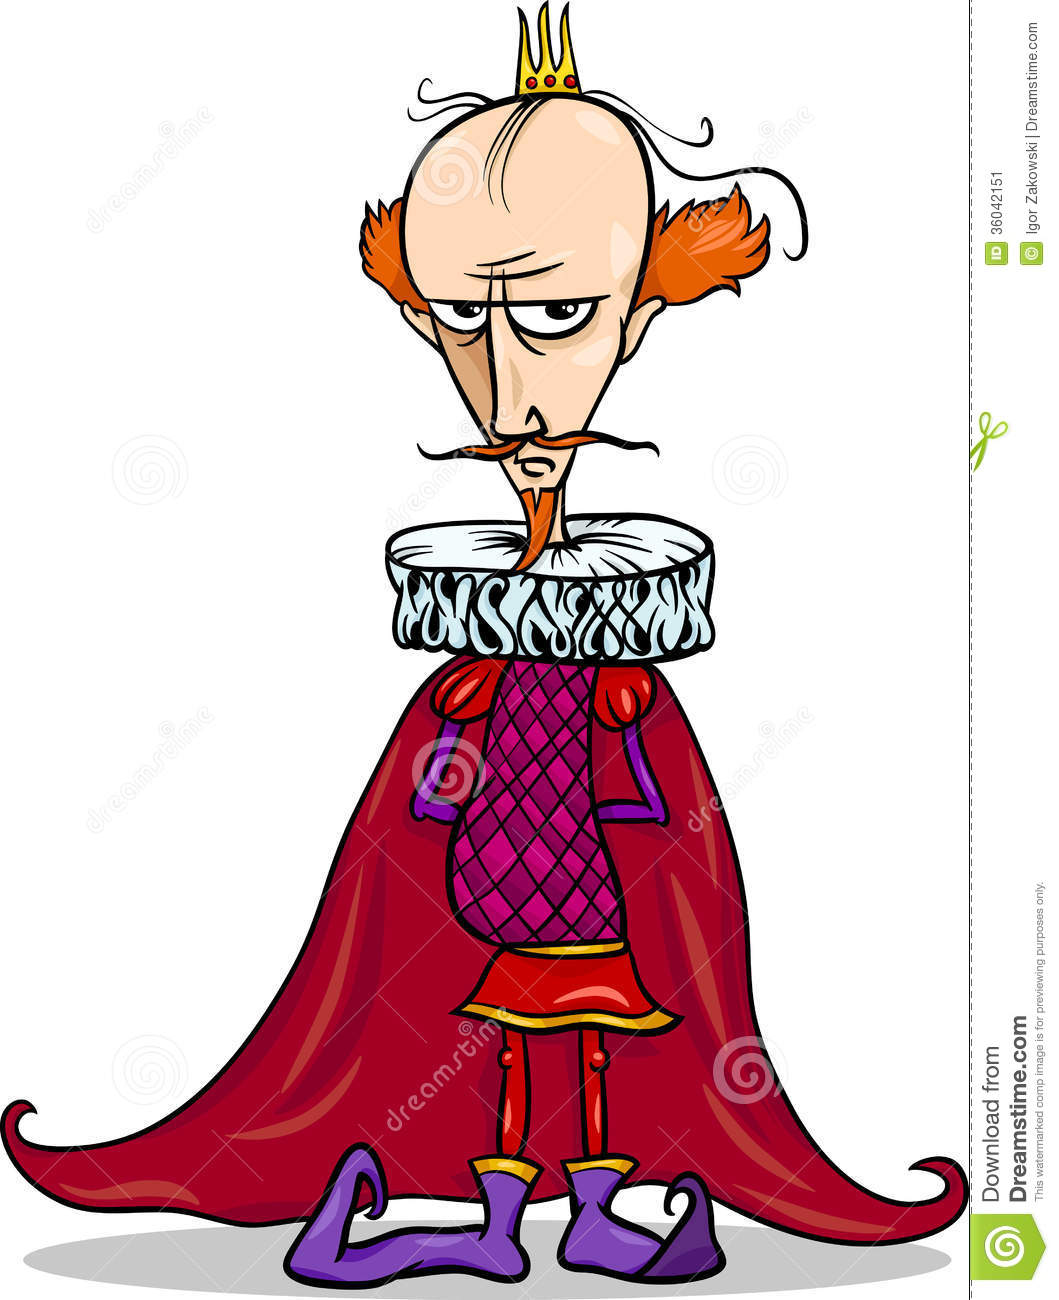 King Cartoon Images Clipart.